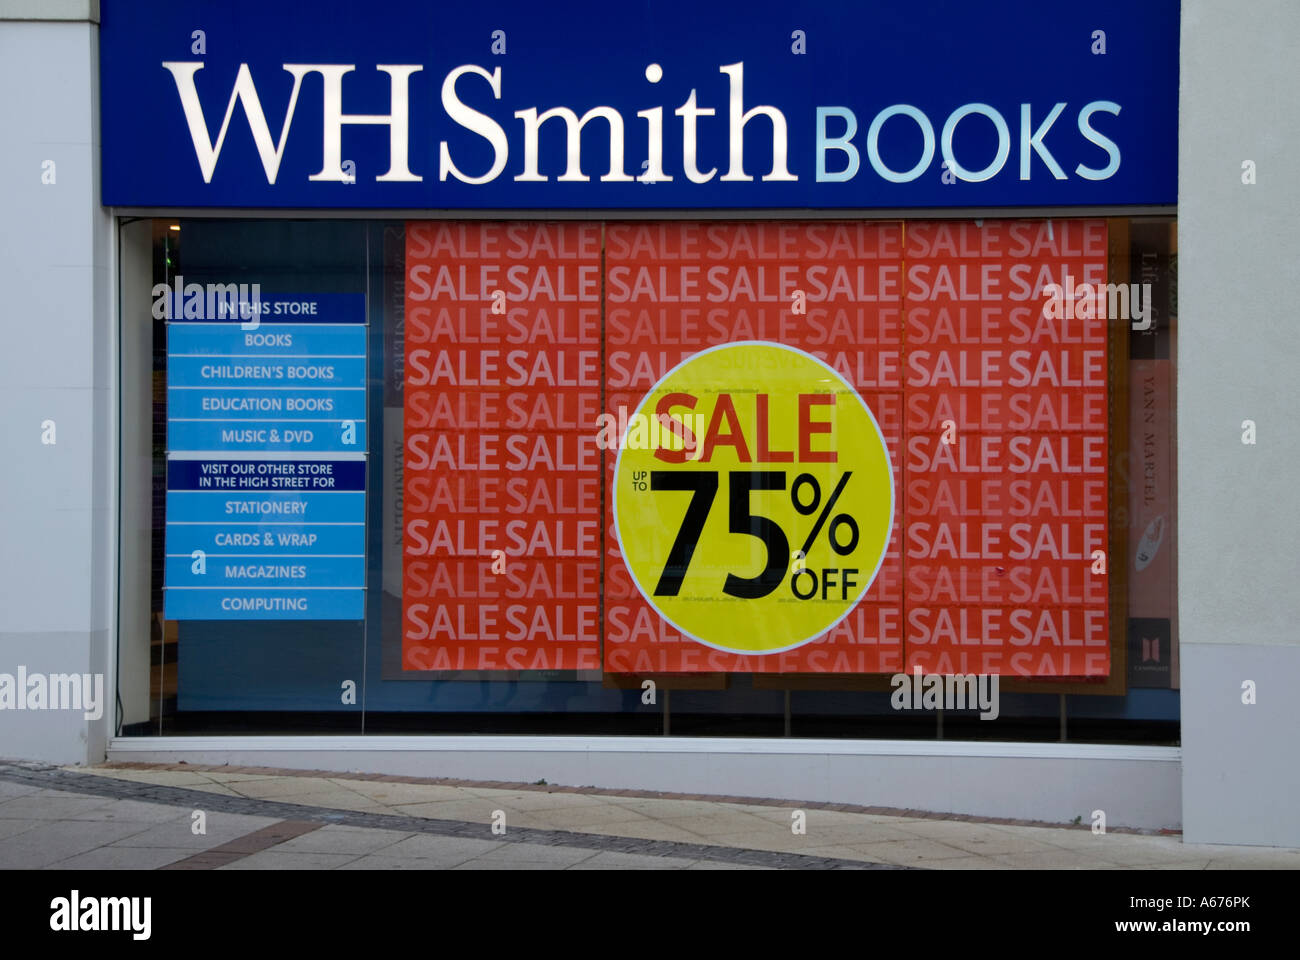 Wh smith coupon